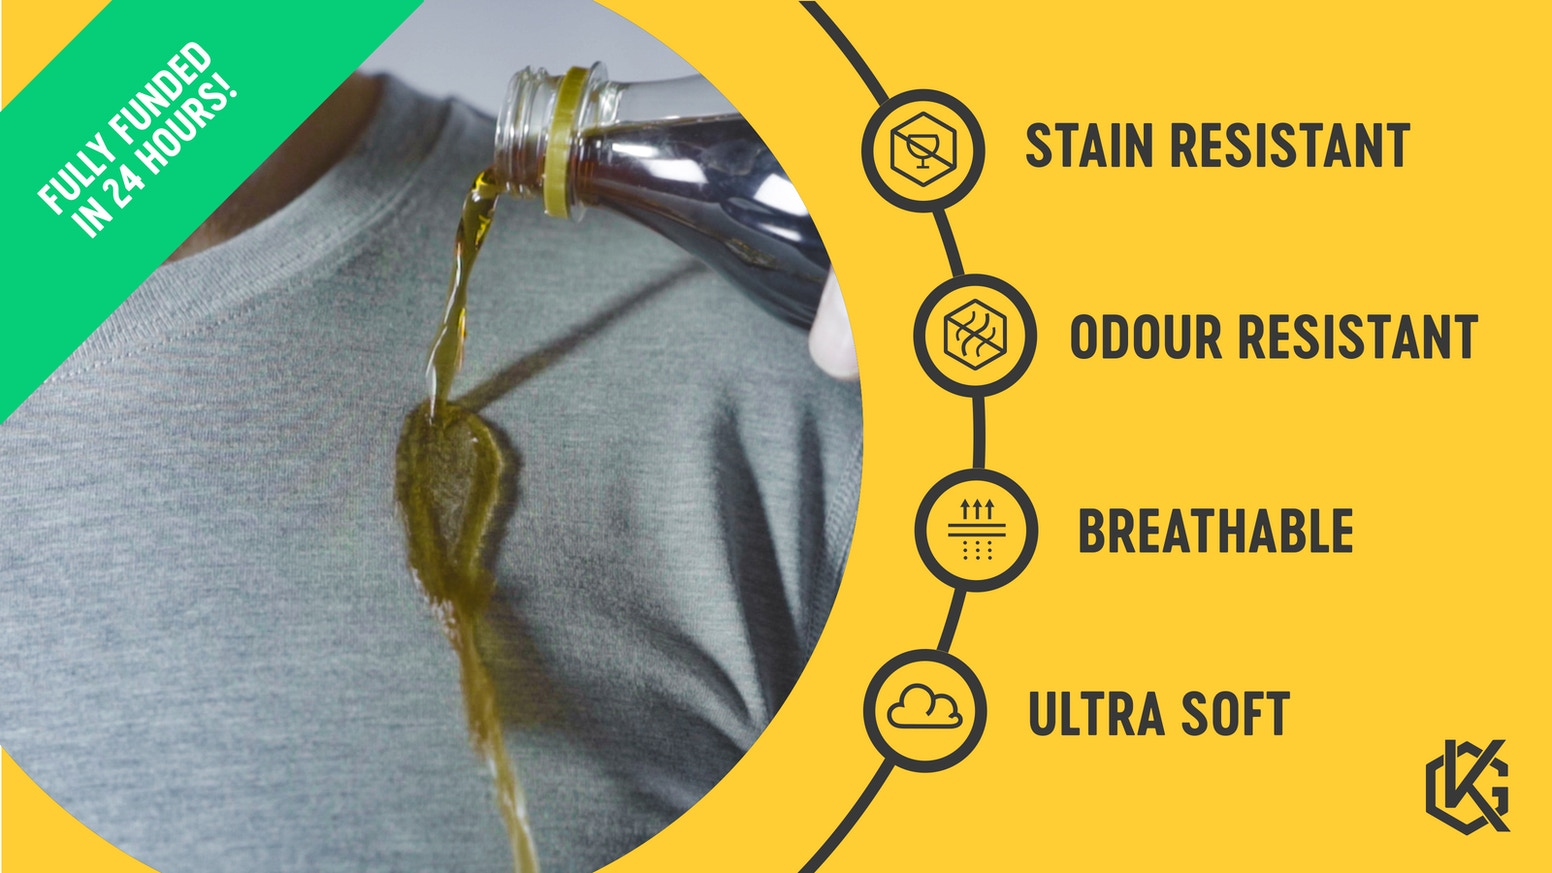 High-performance technical shirt/socks with simple style & real innovations (like odour and stain resistance) for everyday versatility.